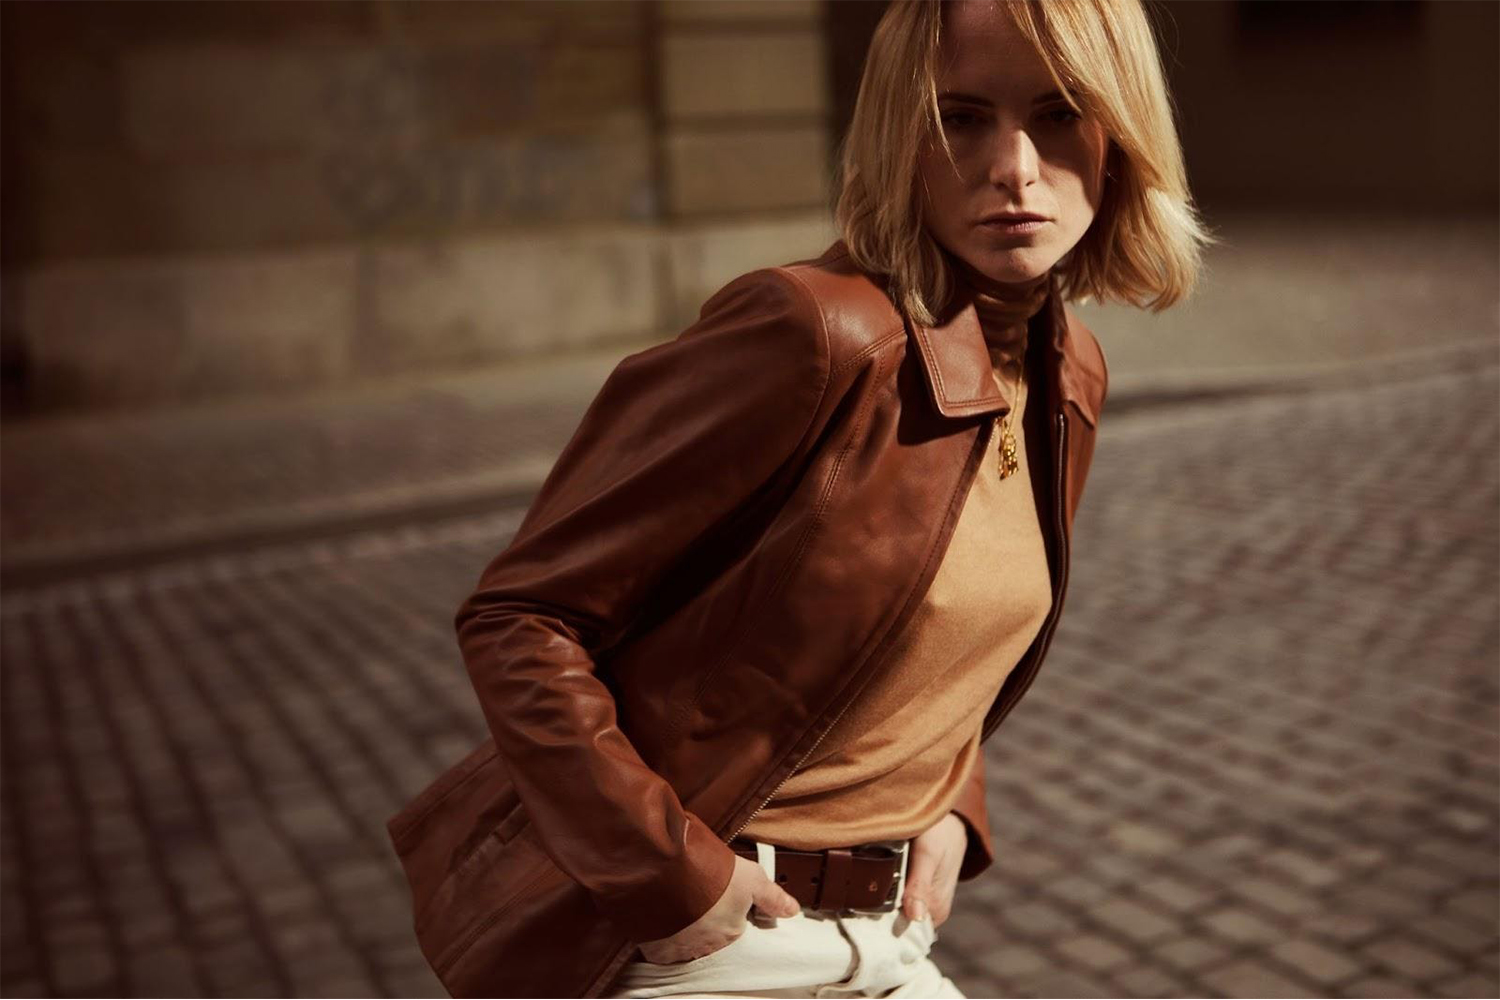 a stylish woman in a leather jacket is posing on the street at night.